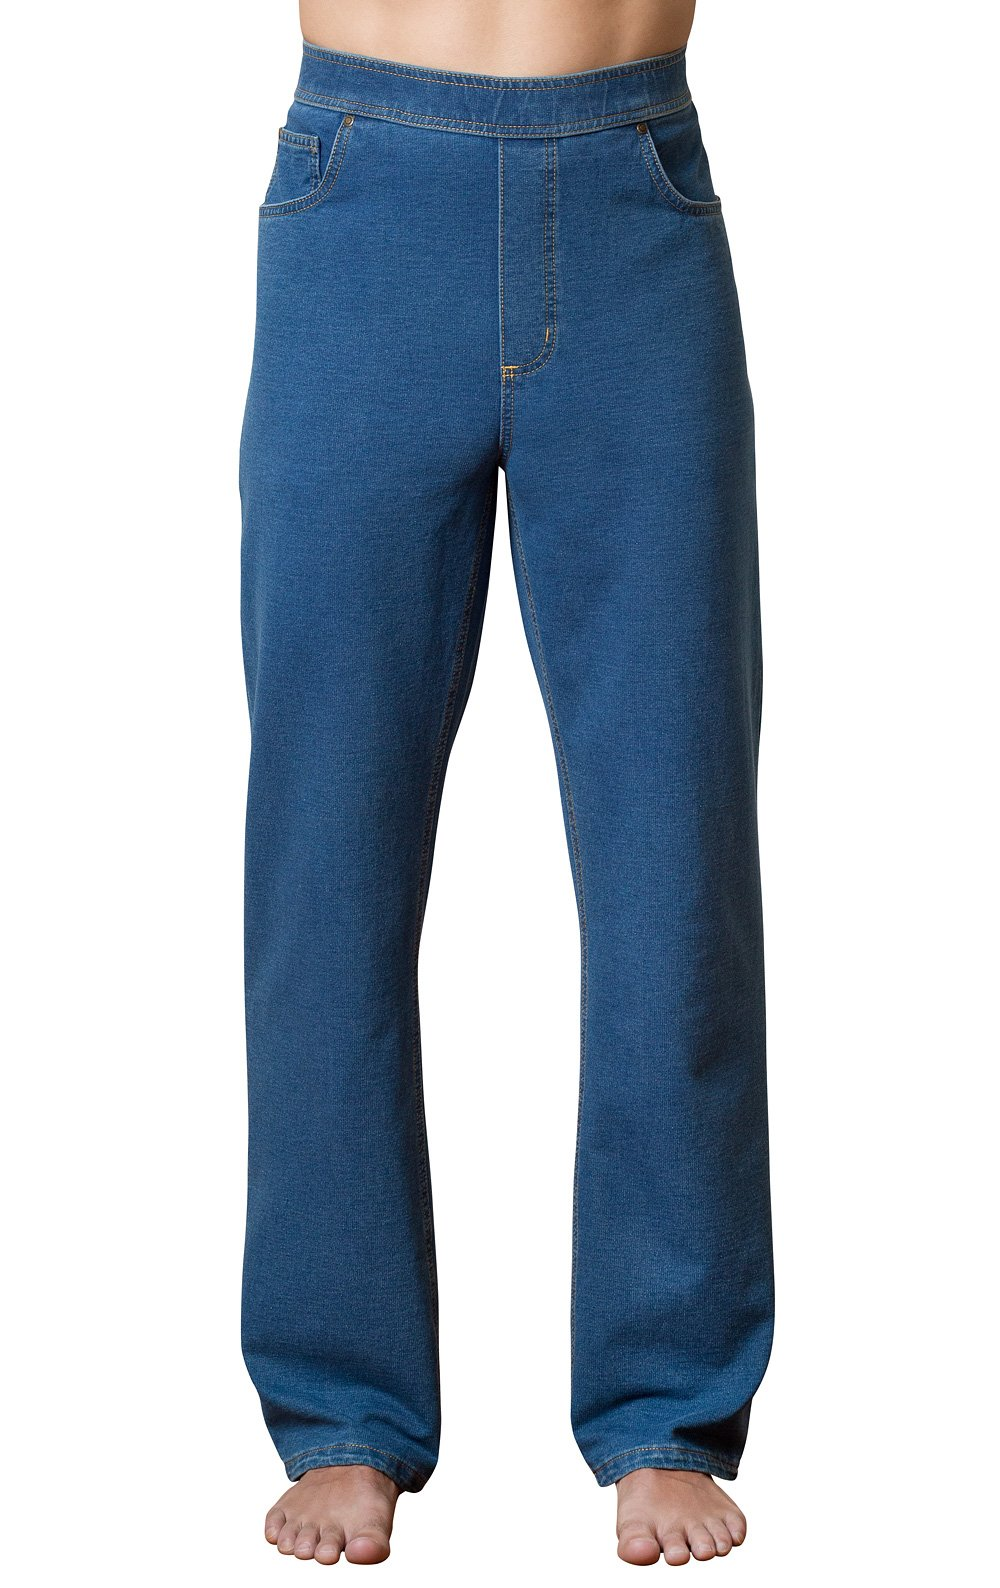 PajamaJeans Men's Straight Leg Knit Denim Jeans in Blue, Pacific Wash, XLG